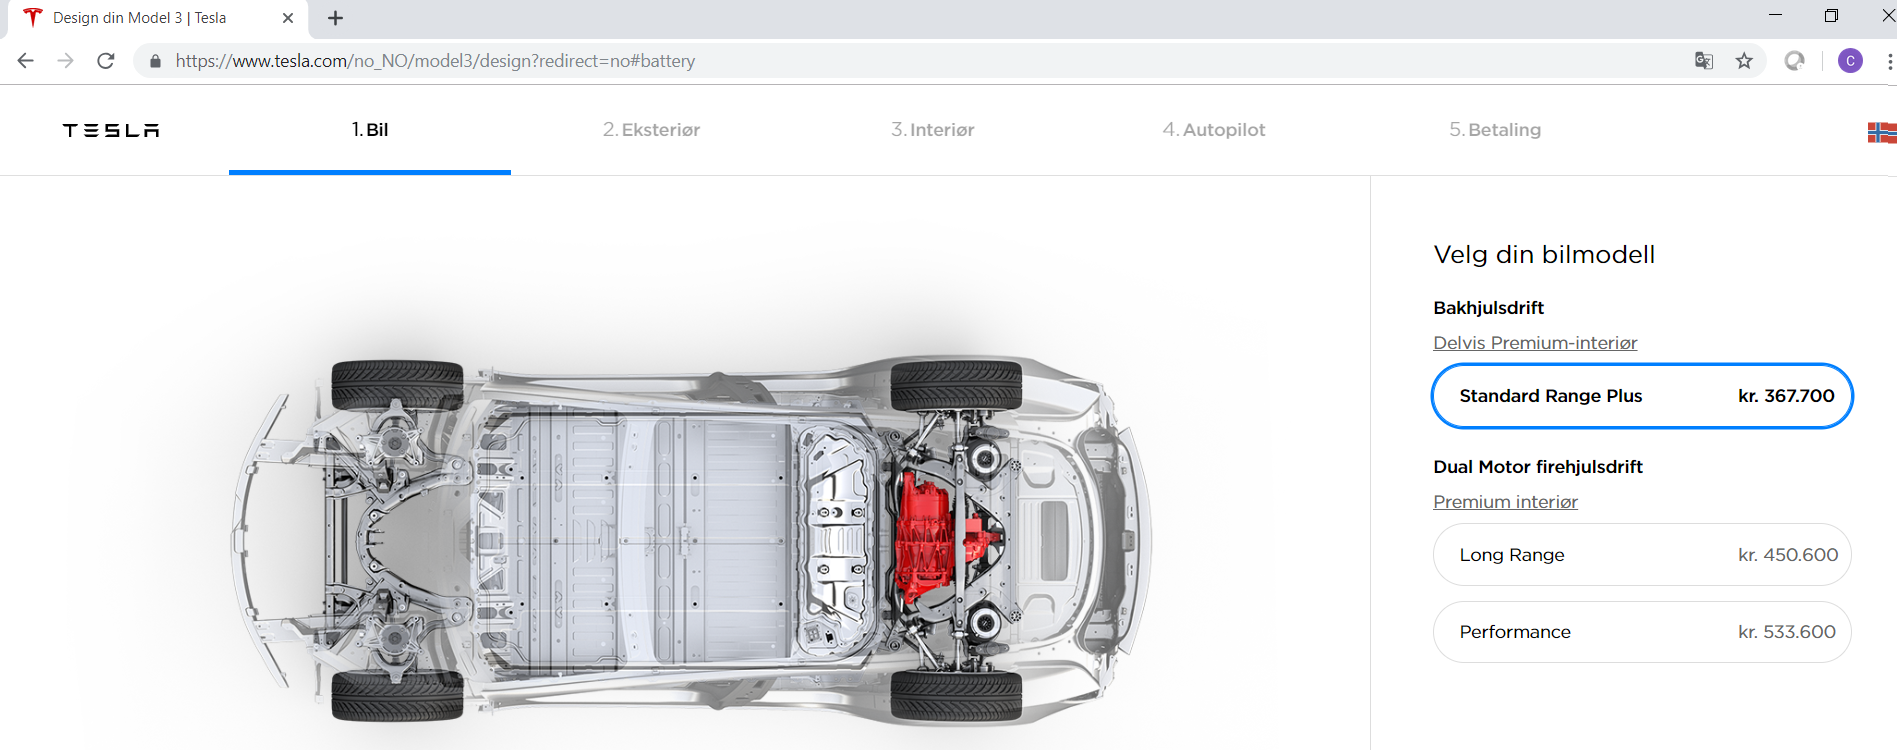 Tesla Model 3 Chaos! Leases, SR And LR Gone, SR+ In The EU, Stealth Price Cuts